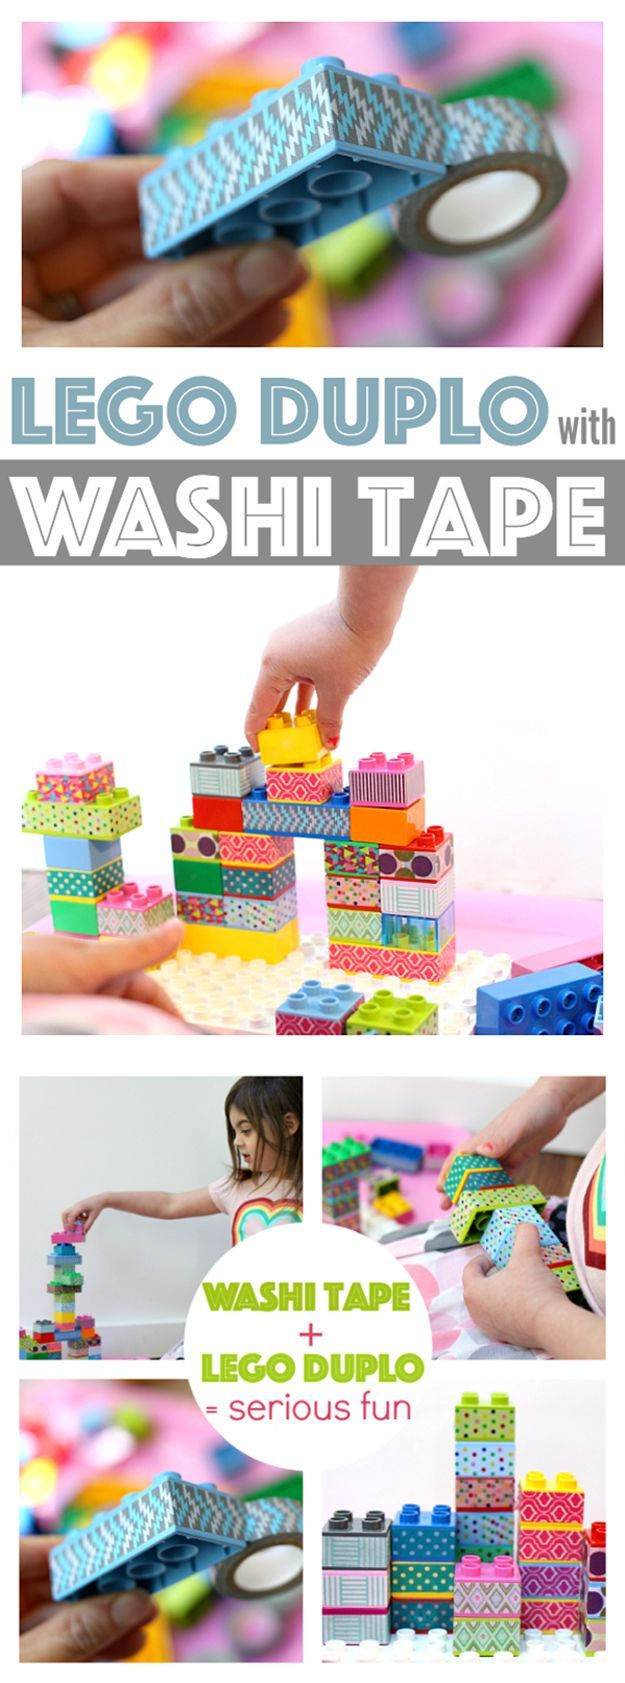 Kids Crafts with Washi Tape | Washi Tape Lego Duplo by DIY Ready at http://diyready.com/100-creative-ways-to-use-washi-tape/